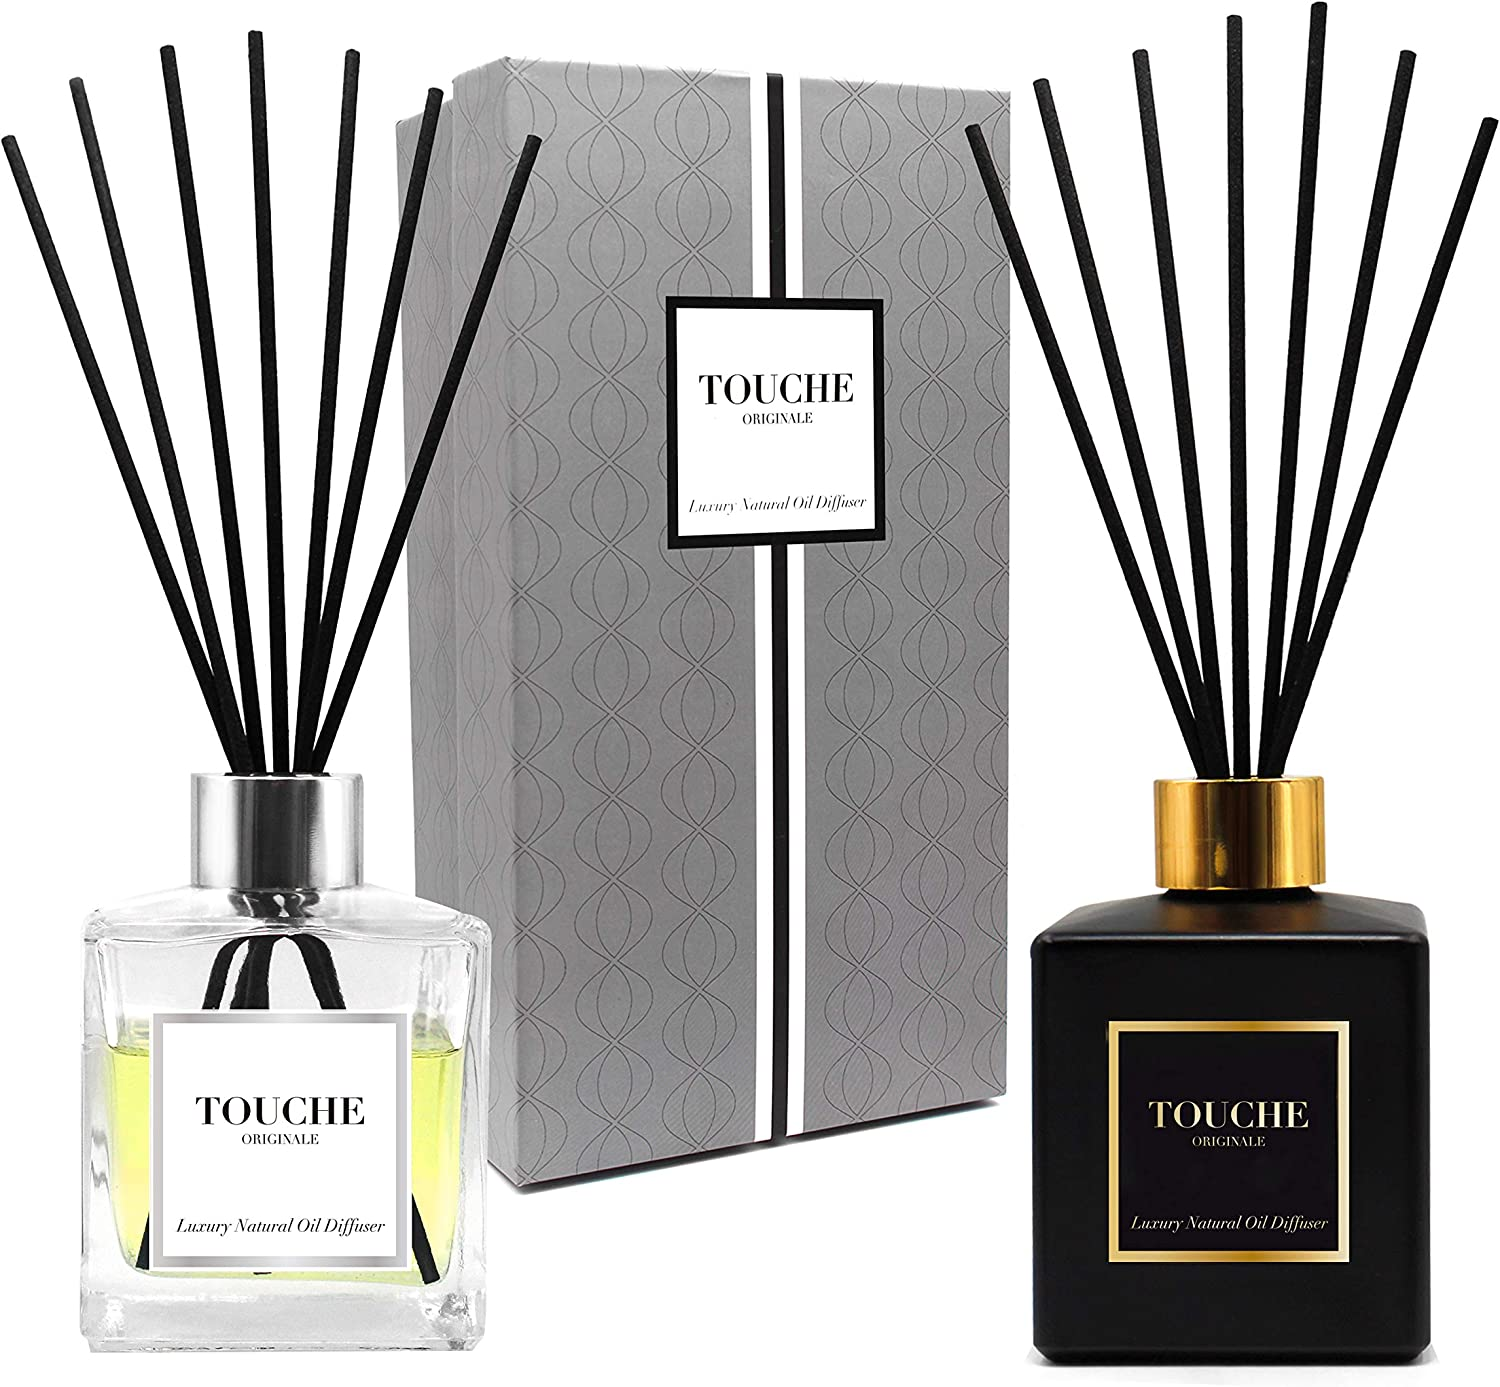 TOUCHE ORIGINALE Luxury Natural Essential Oil Reed Diffuser. Long Lasting Scented Fragrance - 90 Days. Office & Home Aromatherapy. Glass Bottle, 10 Sticks. Alcohol-Free (Citrus, Clear Bottle)